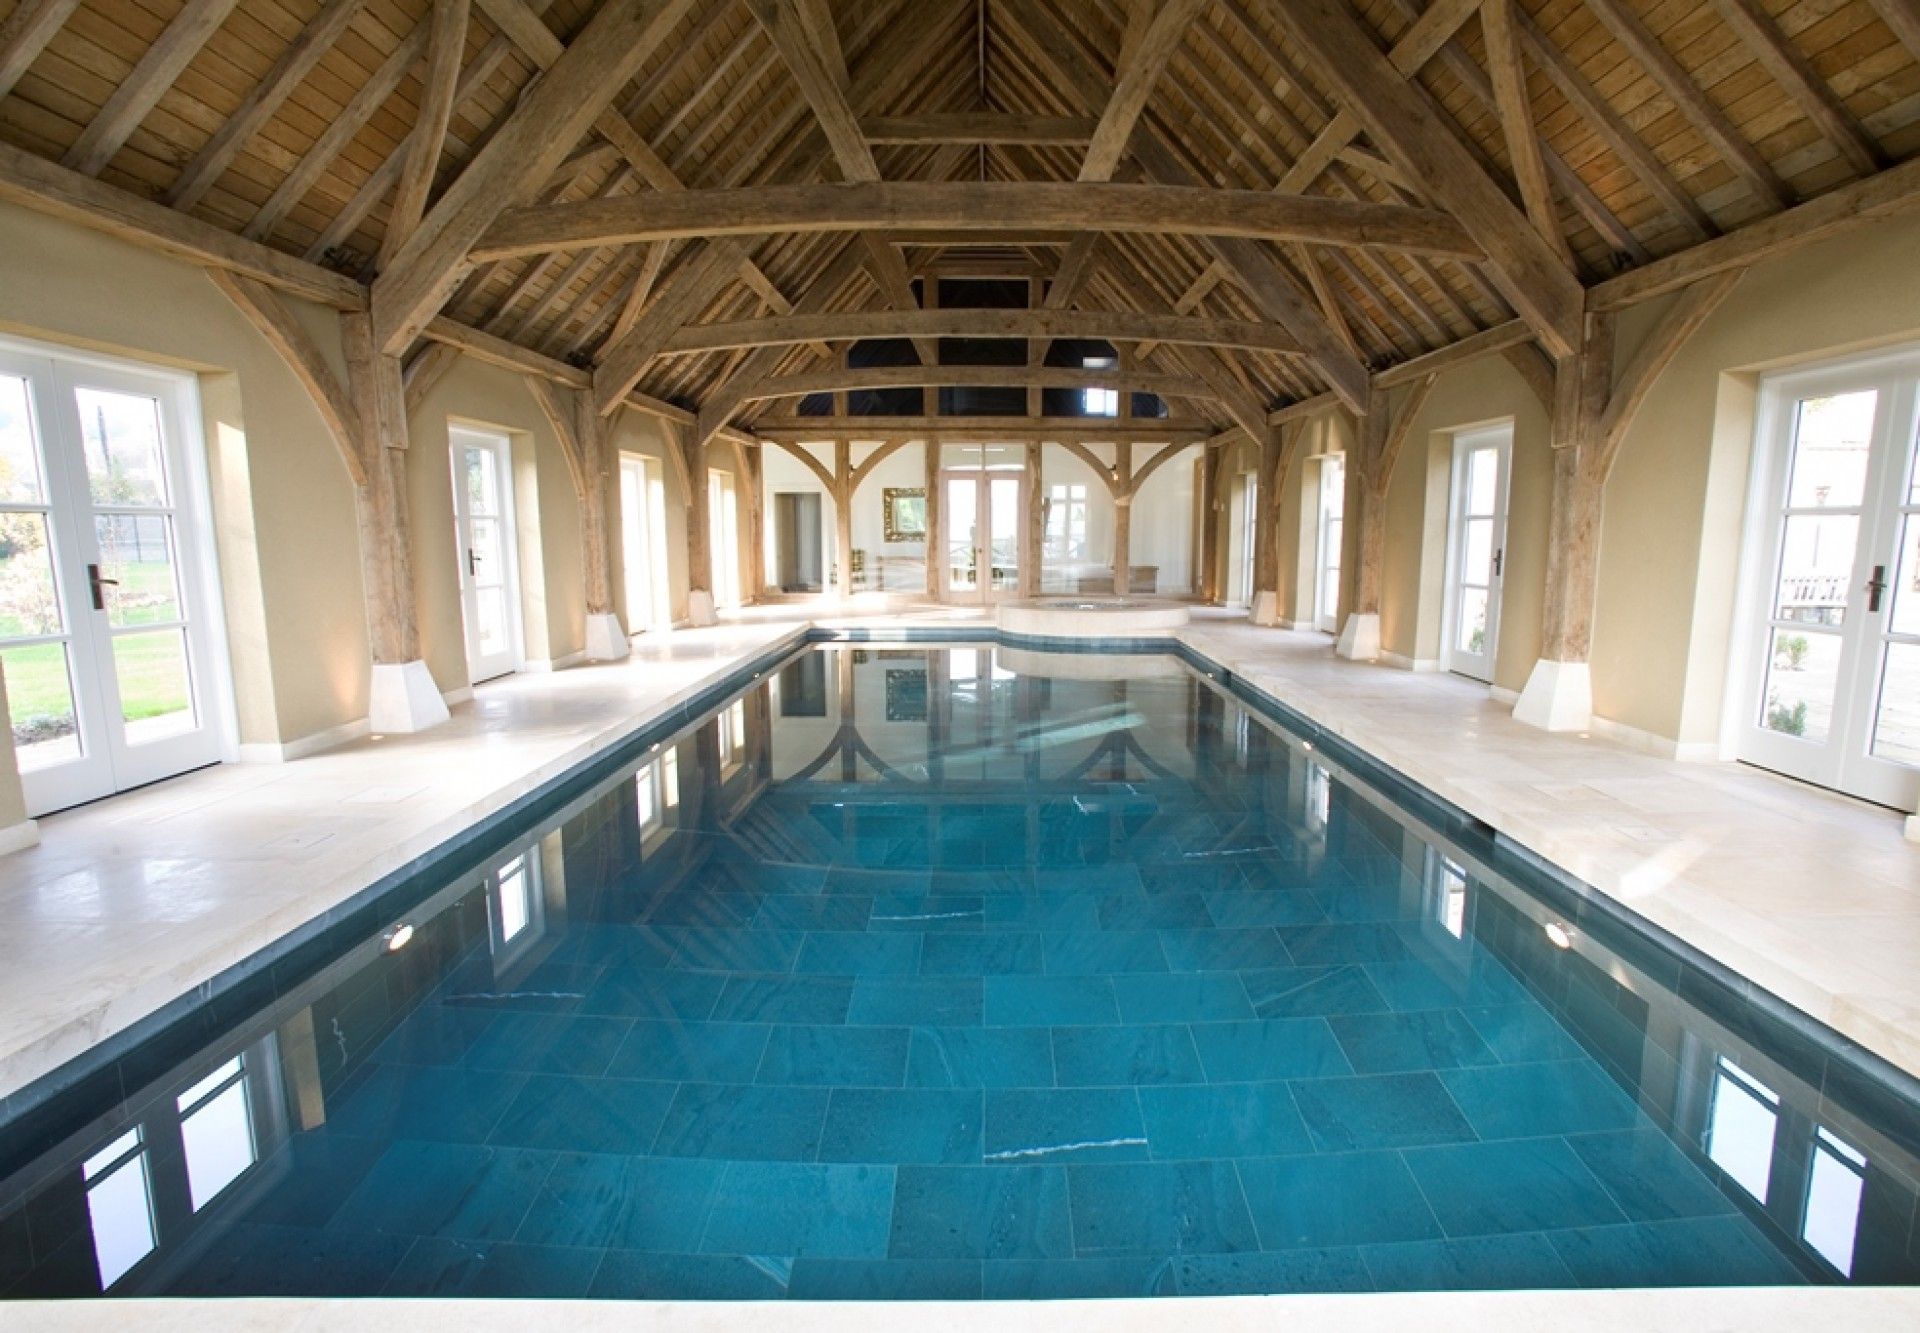 another barn converted into an amazing swimming pool